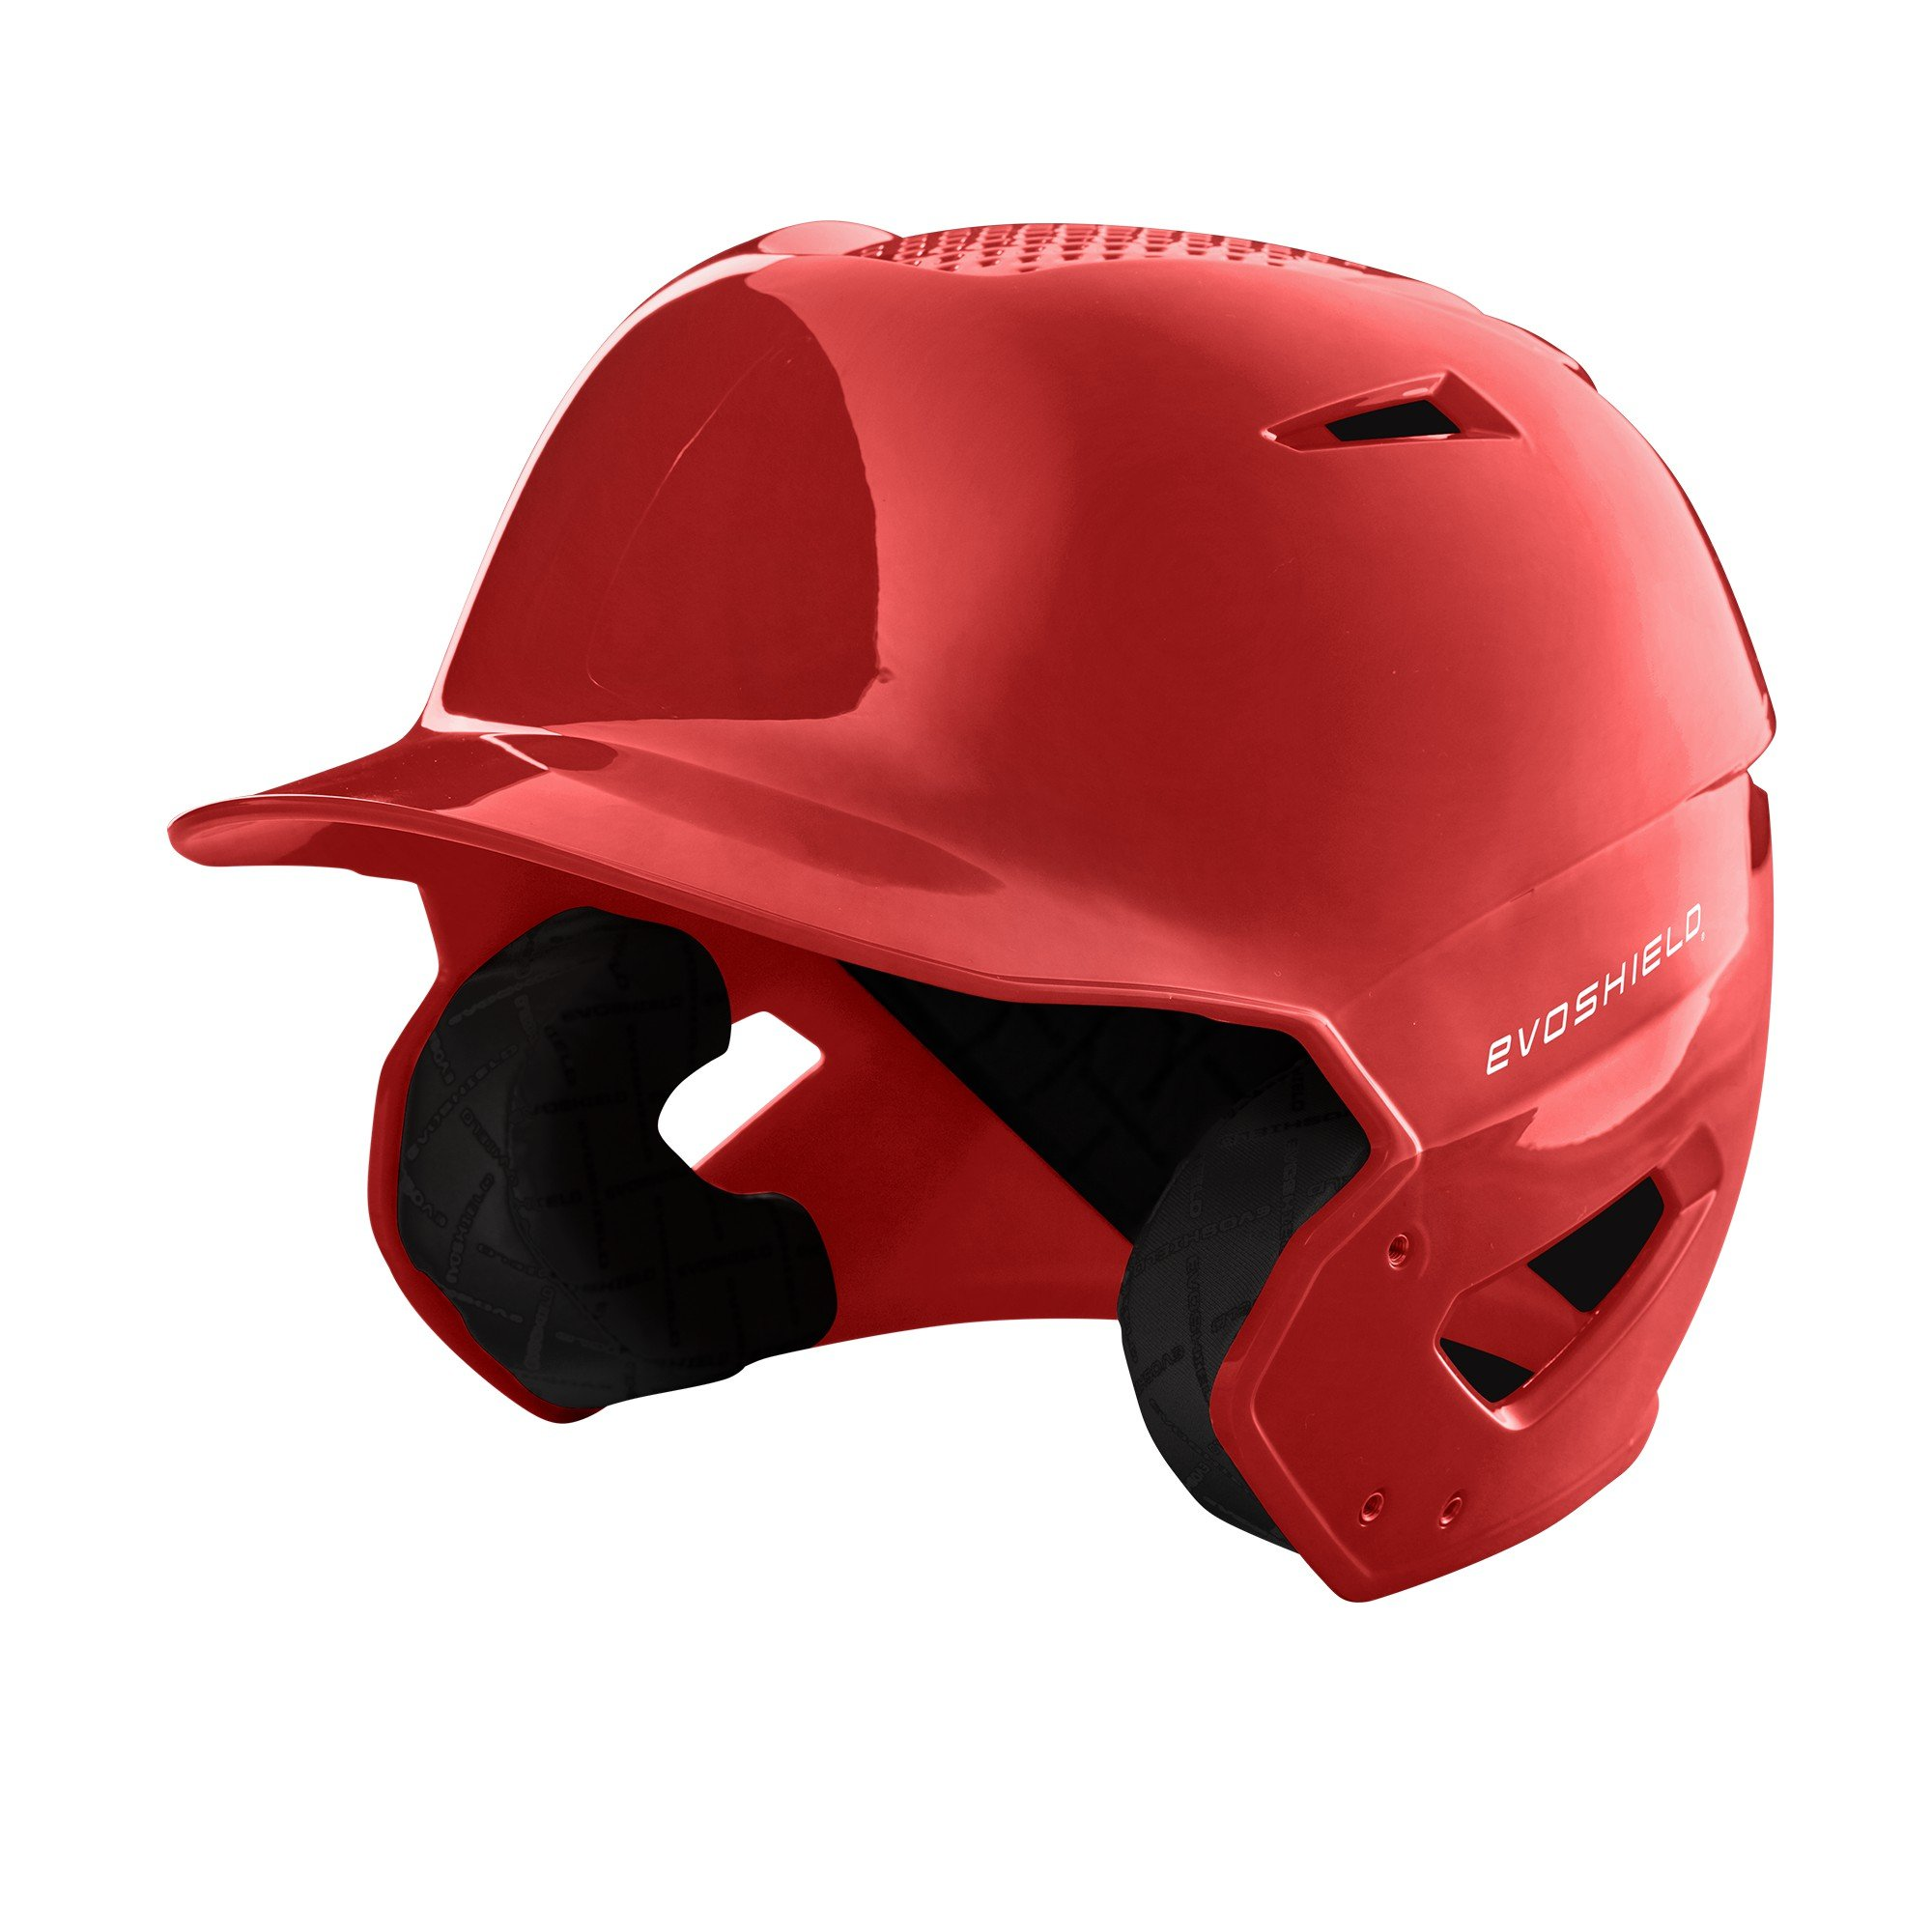 EvoShield XVT Batting Helmet, Scarlet - S-M by EvoShield